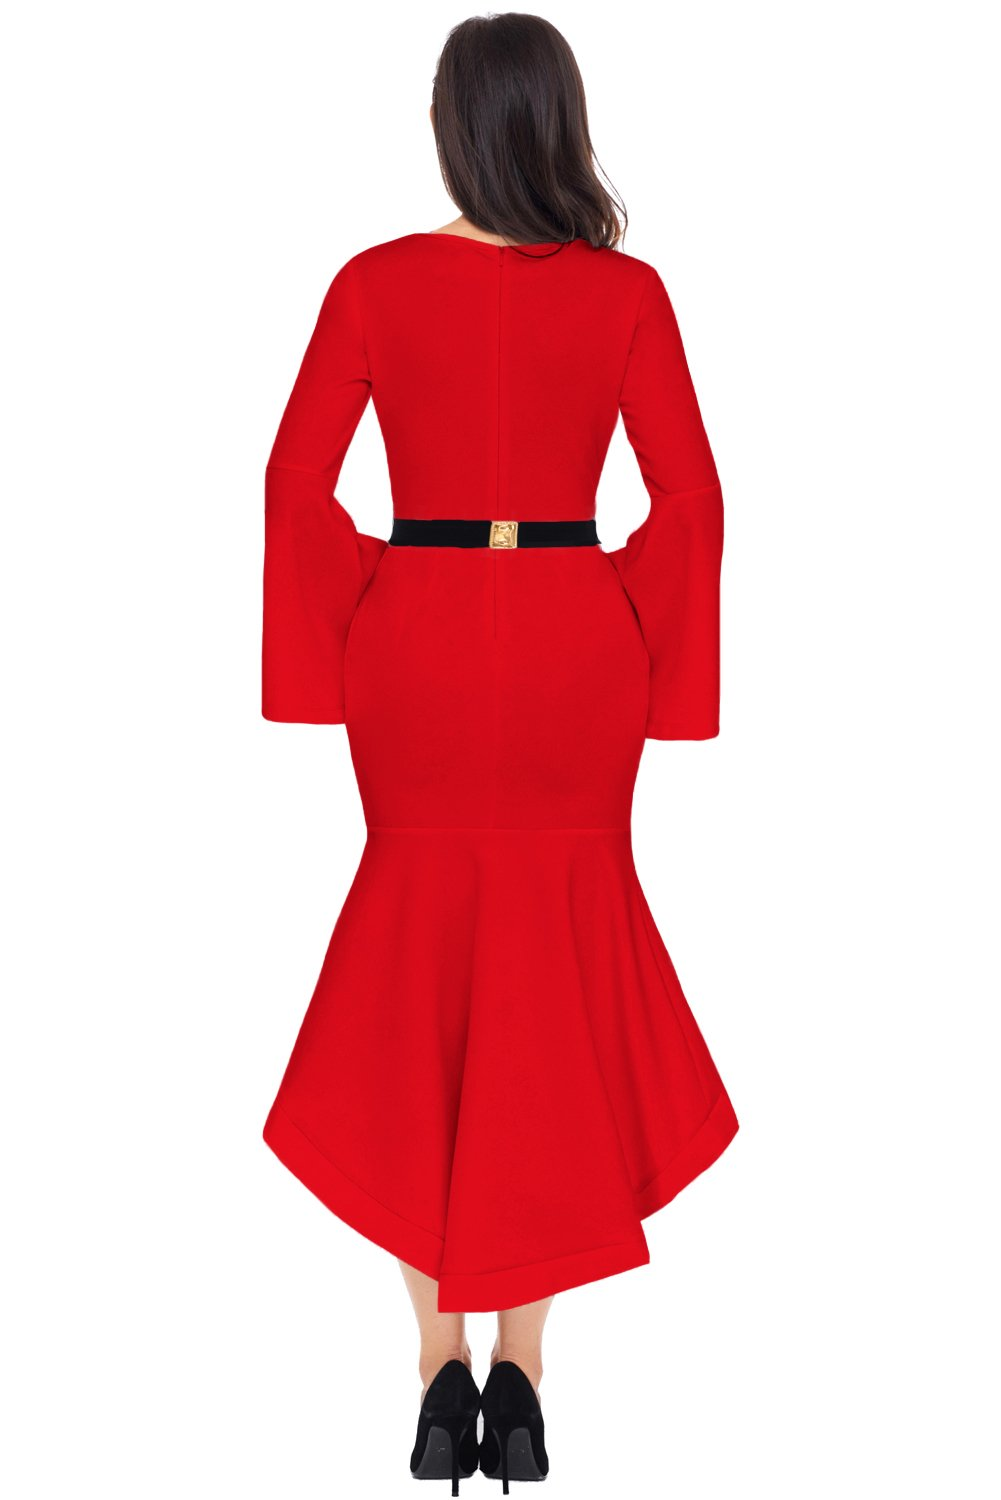 Women Clothing Designers The Best Red Bell Sleeve Dip Hem Belted Dress